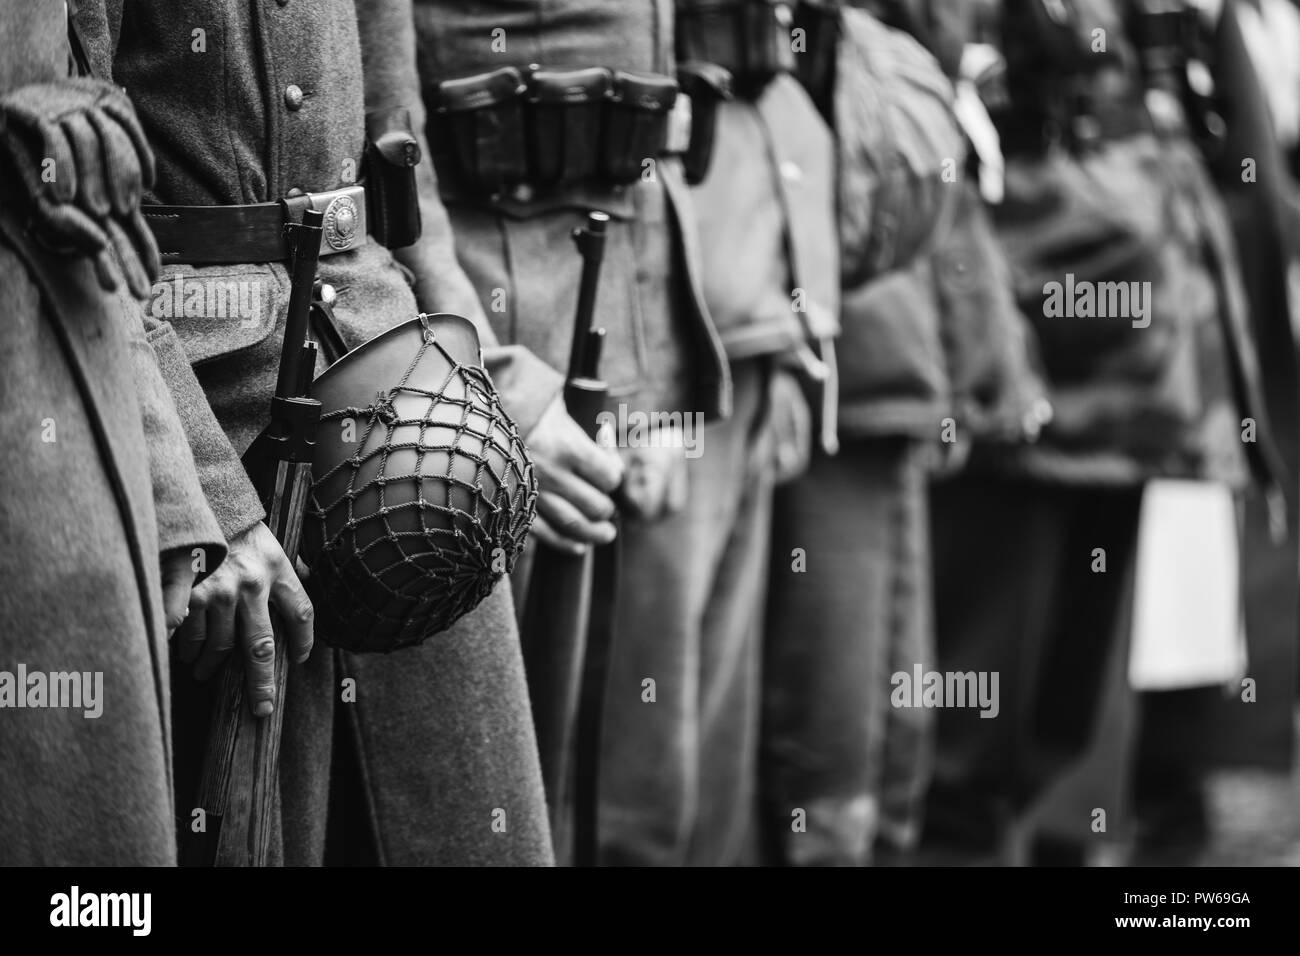 Close Up Of German Military Ammunition Of A German Soldier. Unidentified Re-enactors Dressed As World War II German Soldiers Standing Order. Photo In  - Stock Image